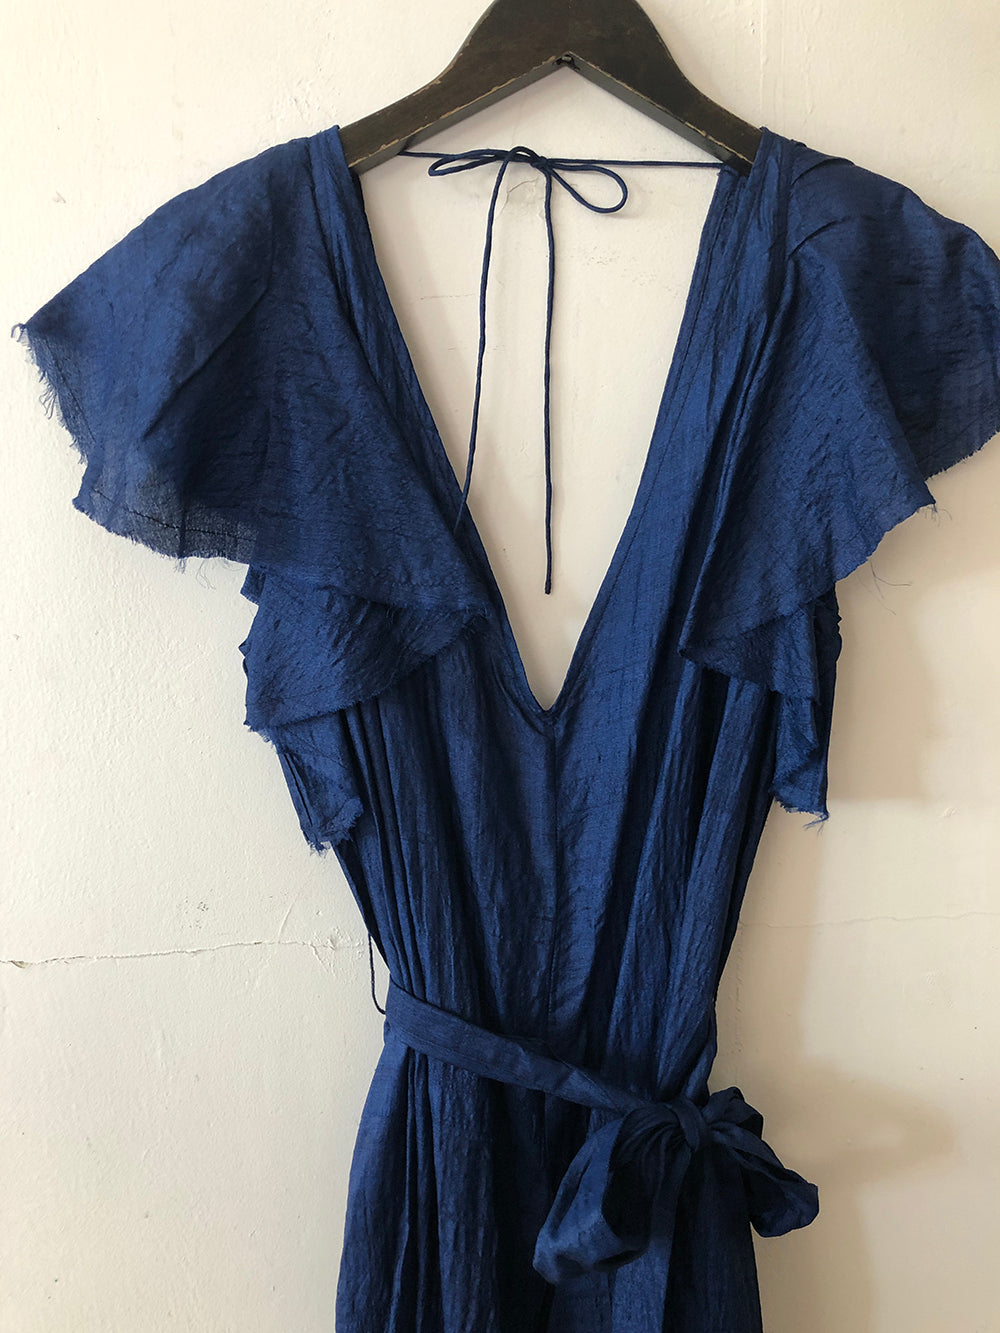 anaak talitha flutter jumpsuit in cobalt